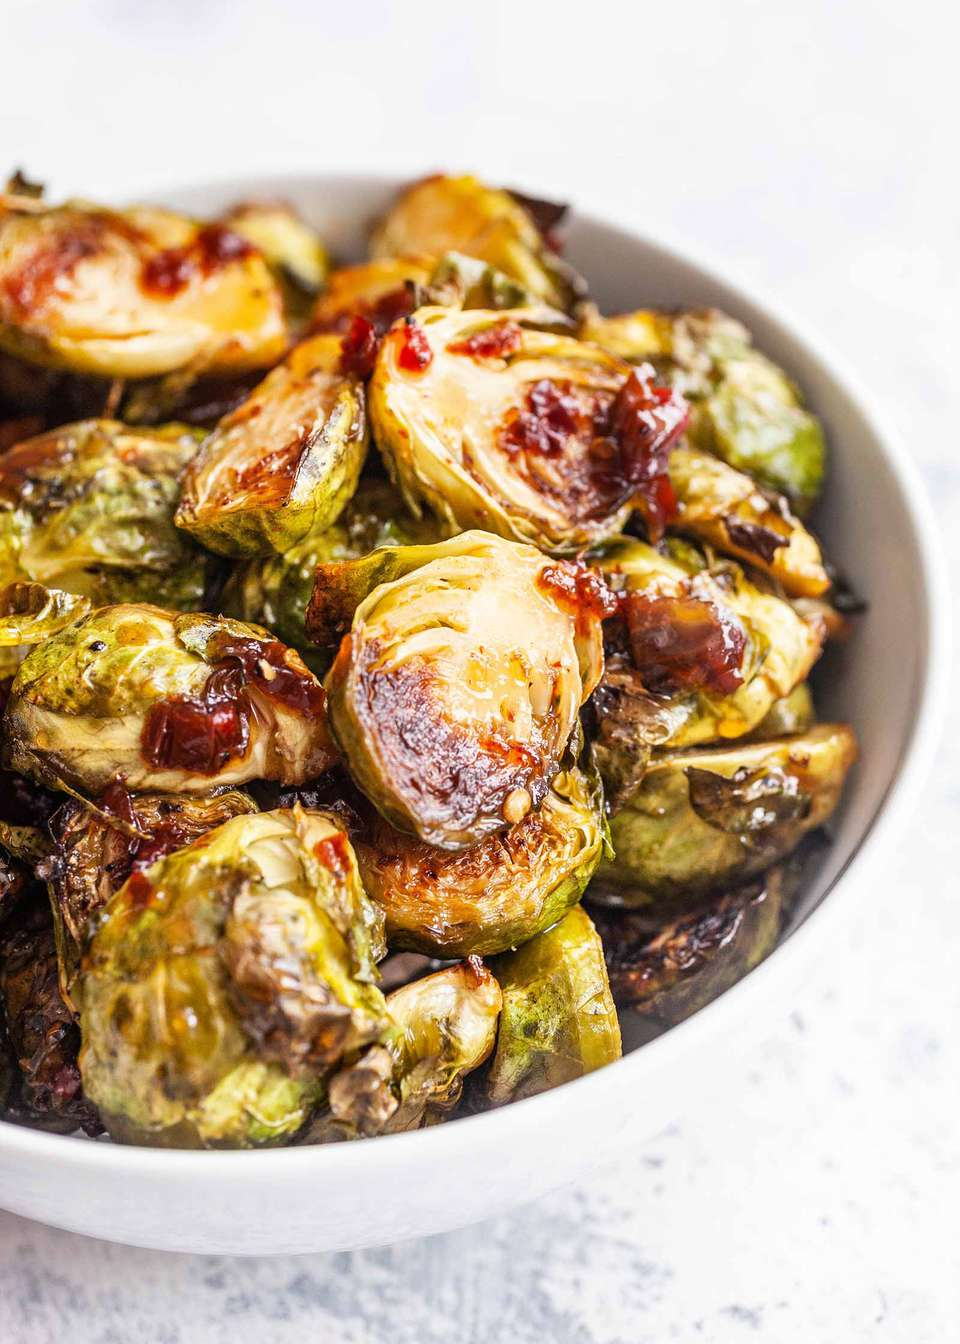 Roasted Brussel Sprouts with Chipotle